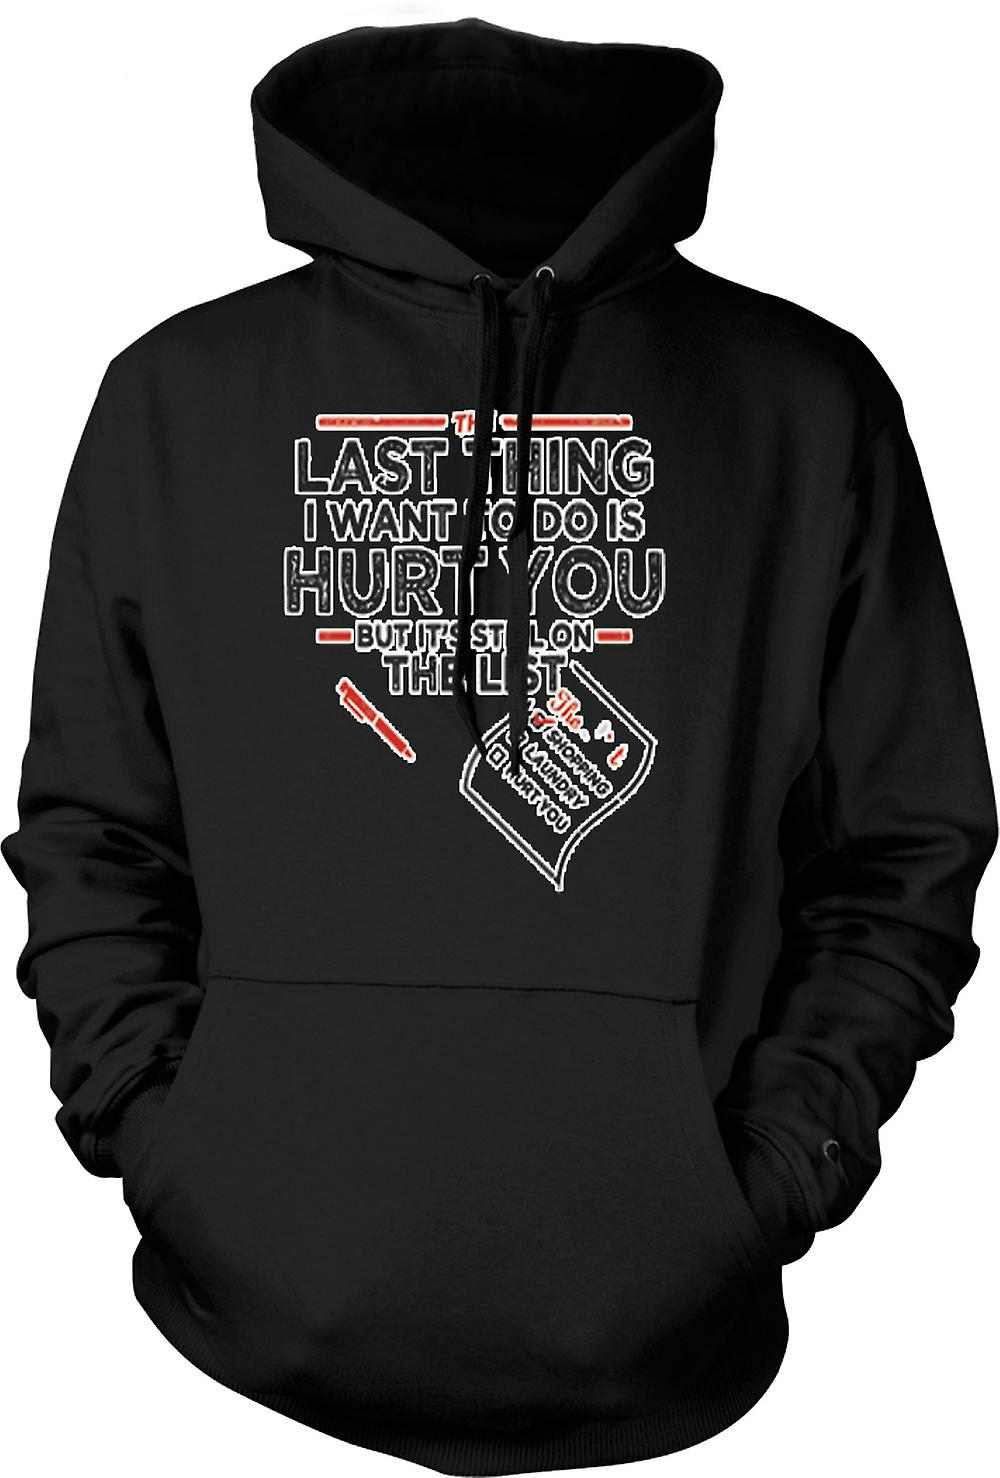 Mens Hoodie - The Last Thing I Want To Do Is Hurt You - Quote